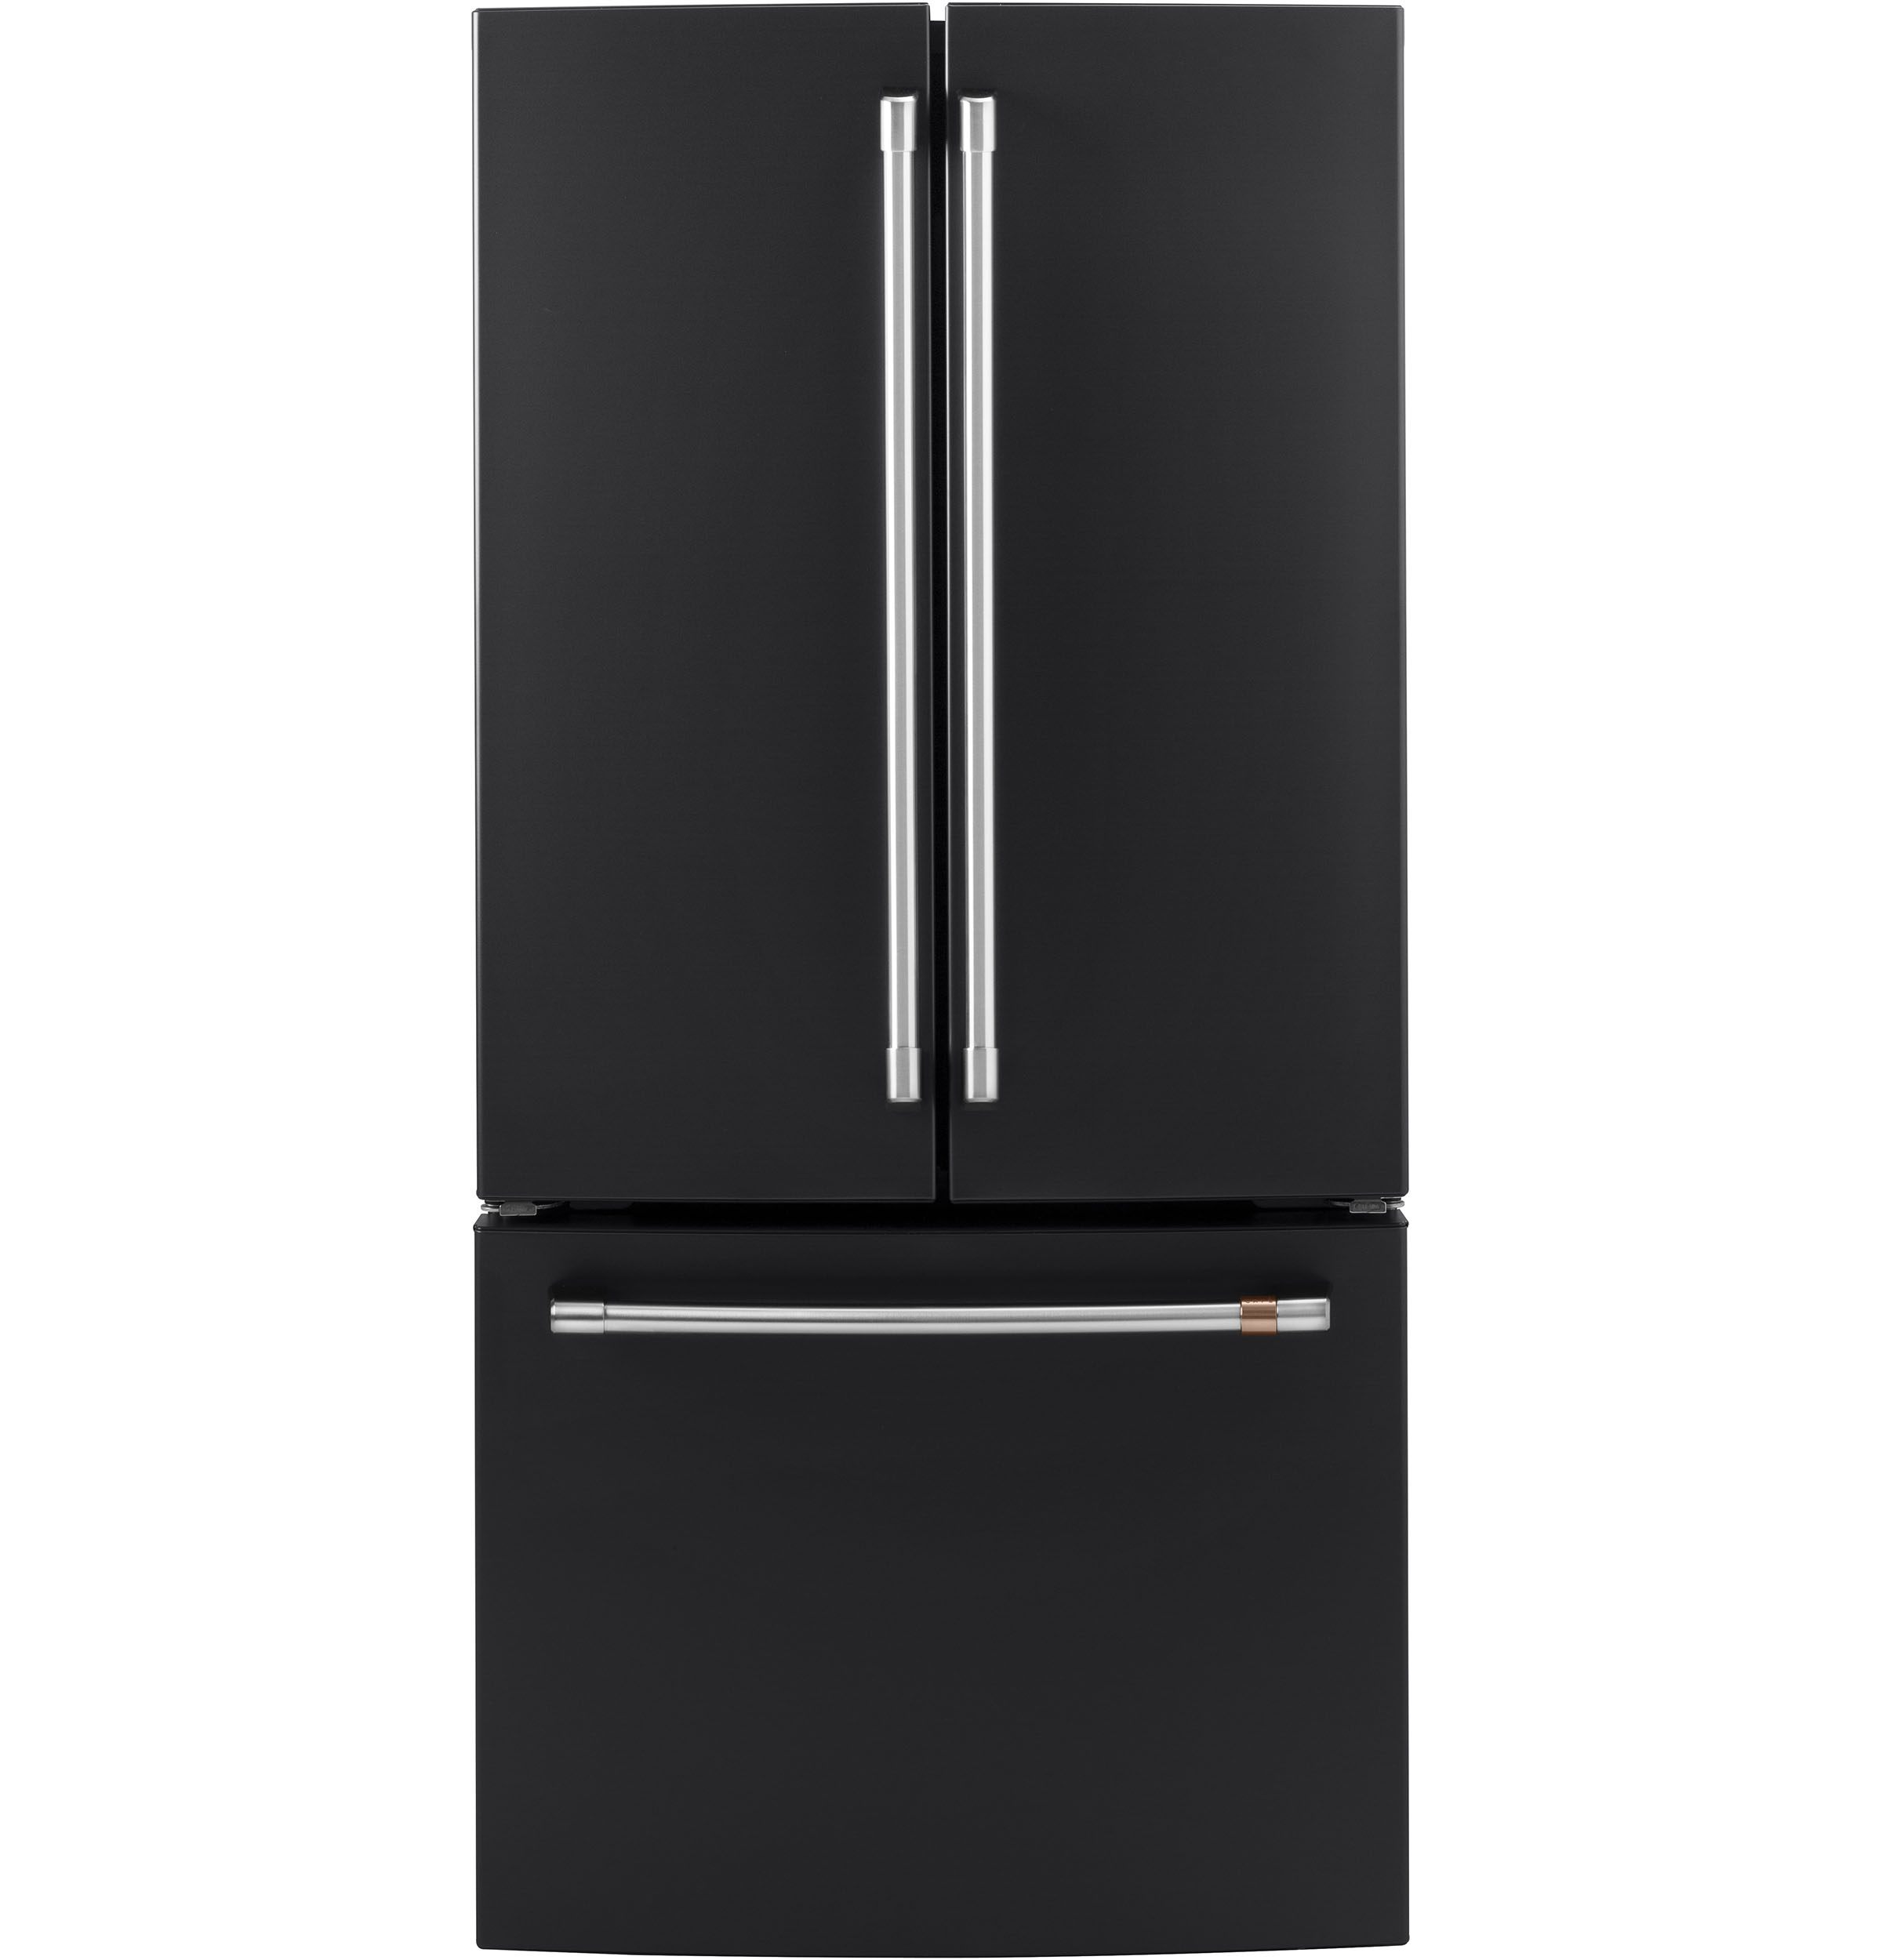 Cafe Café™ ENERGY STAR® 18.6 Cu. Ft. Counter-Depth French-Door Refrigerator